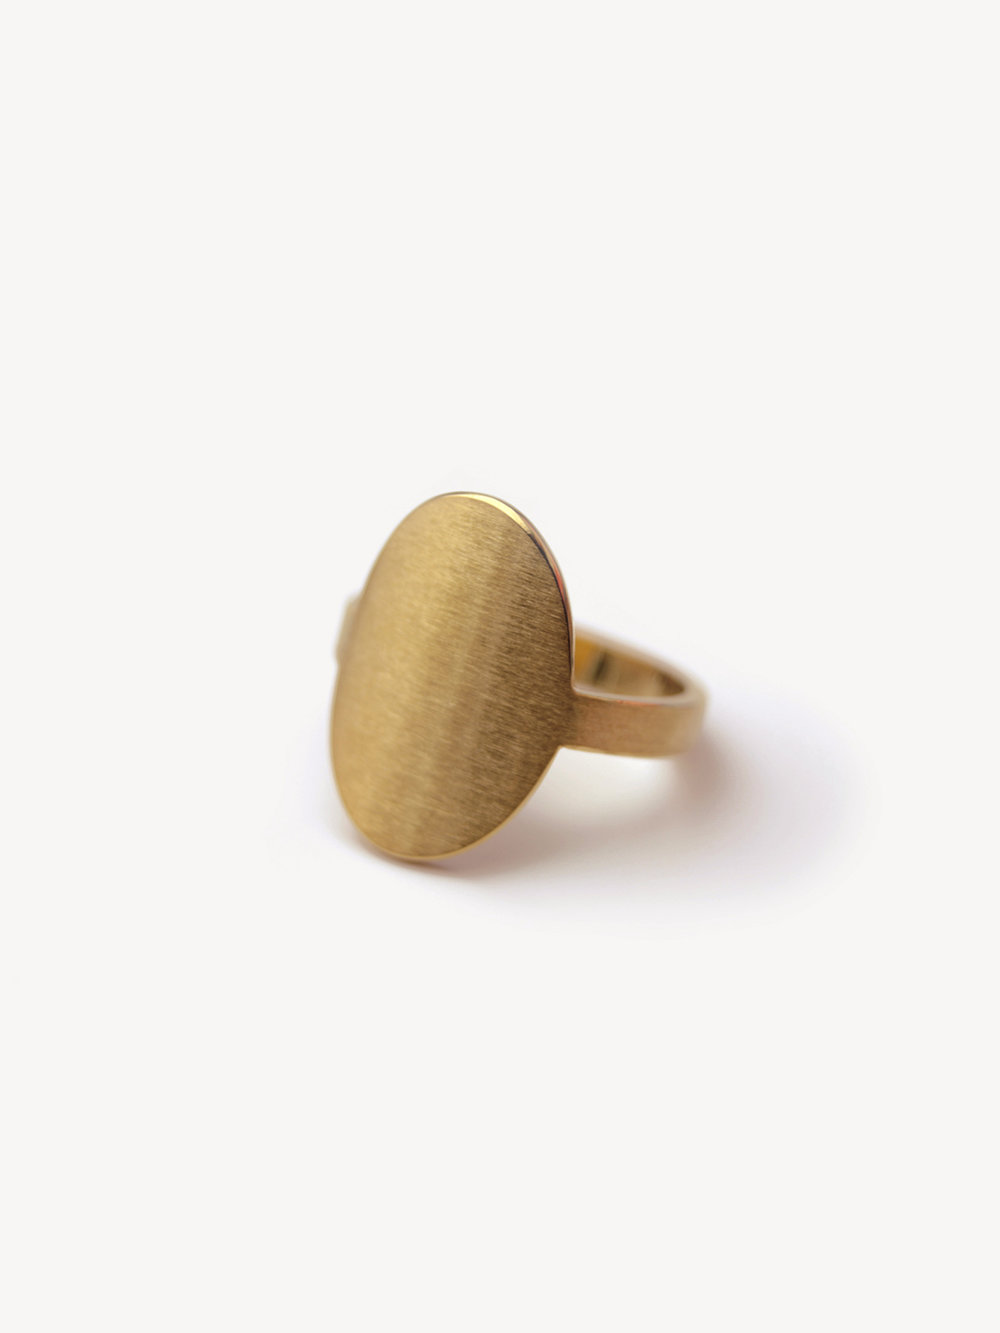 Siegelring, hochoval Klein in 585 Gold/ Signet ring, vertical oval small in 14kt gold